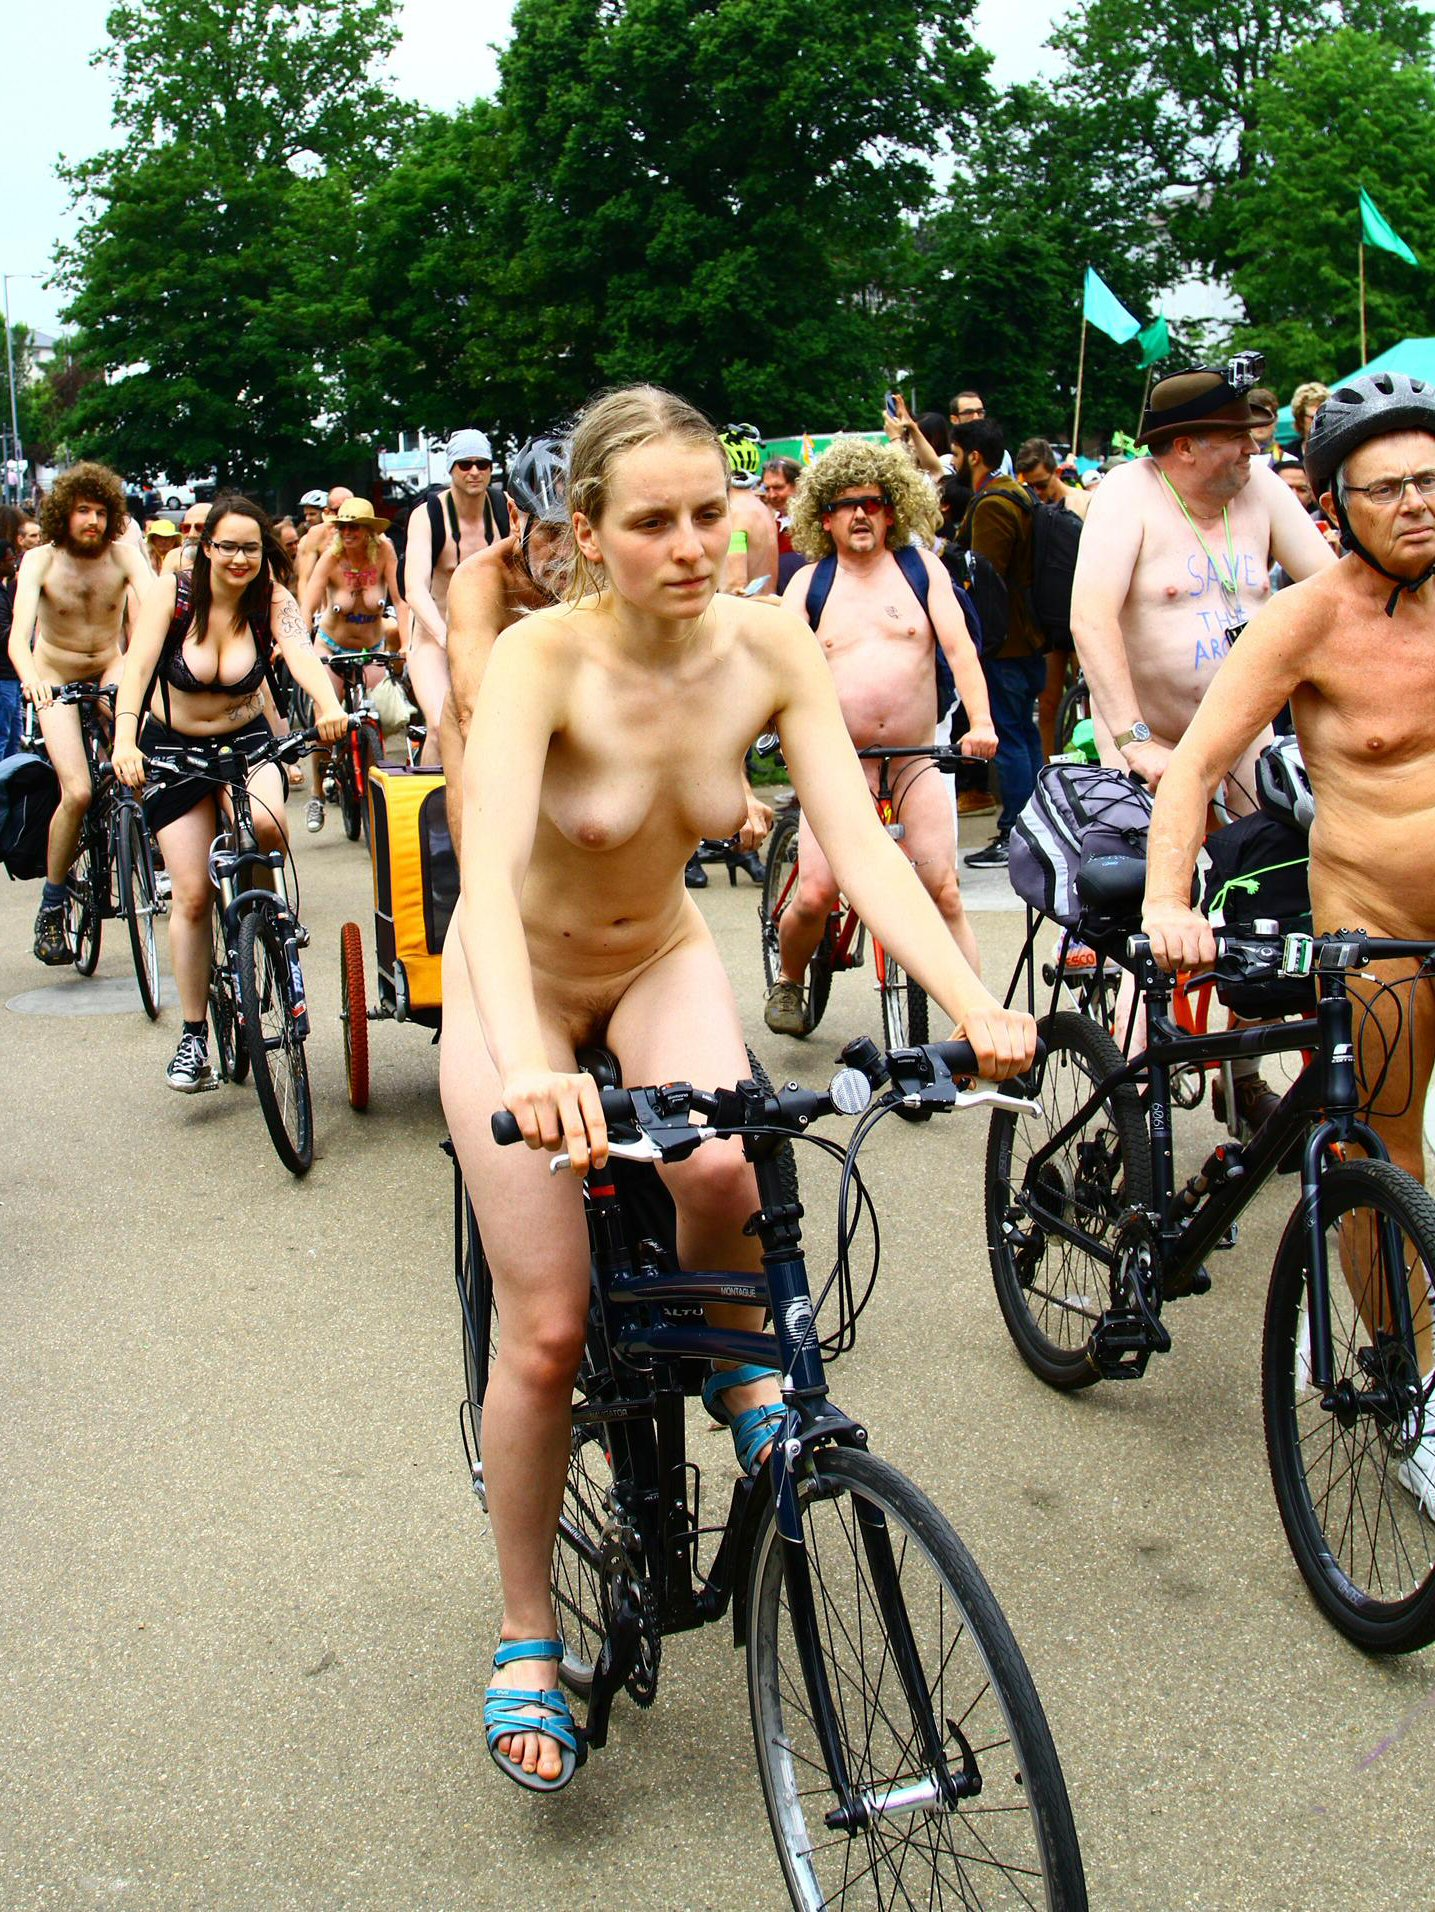 World Naked Bike Ride, Such An Attractive Beauty, - G11277084-1807